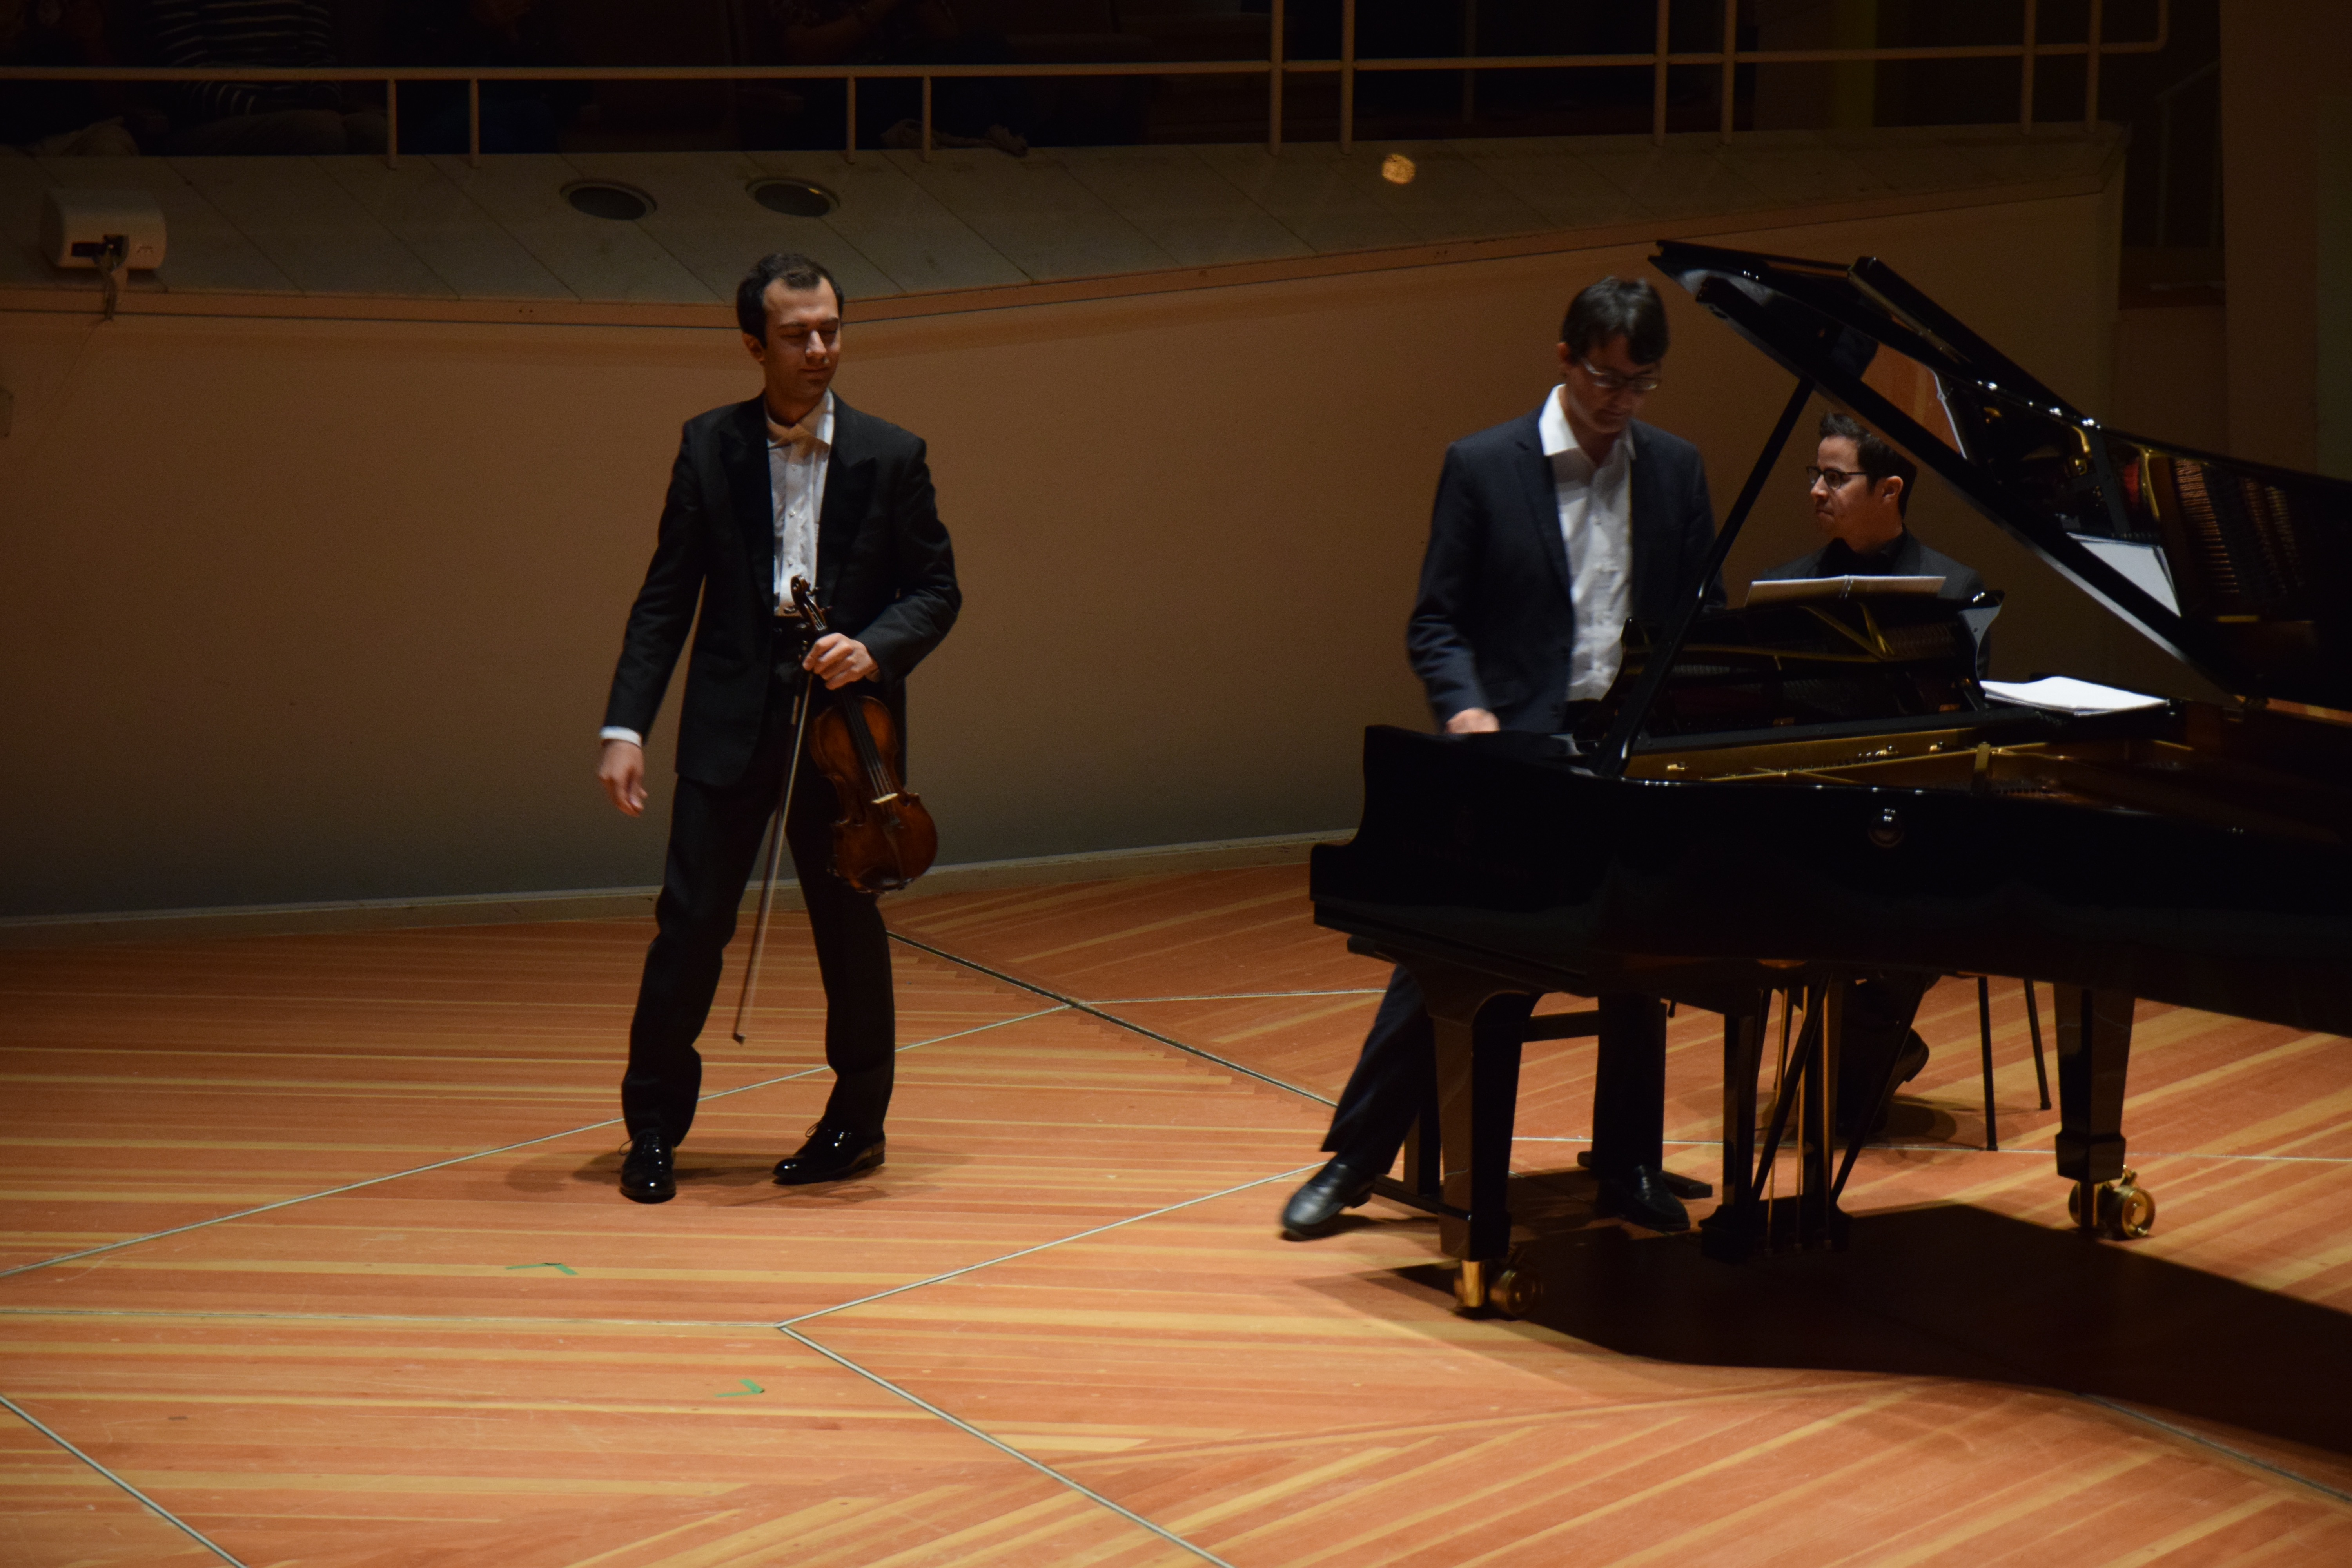 berliner music competition 6